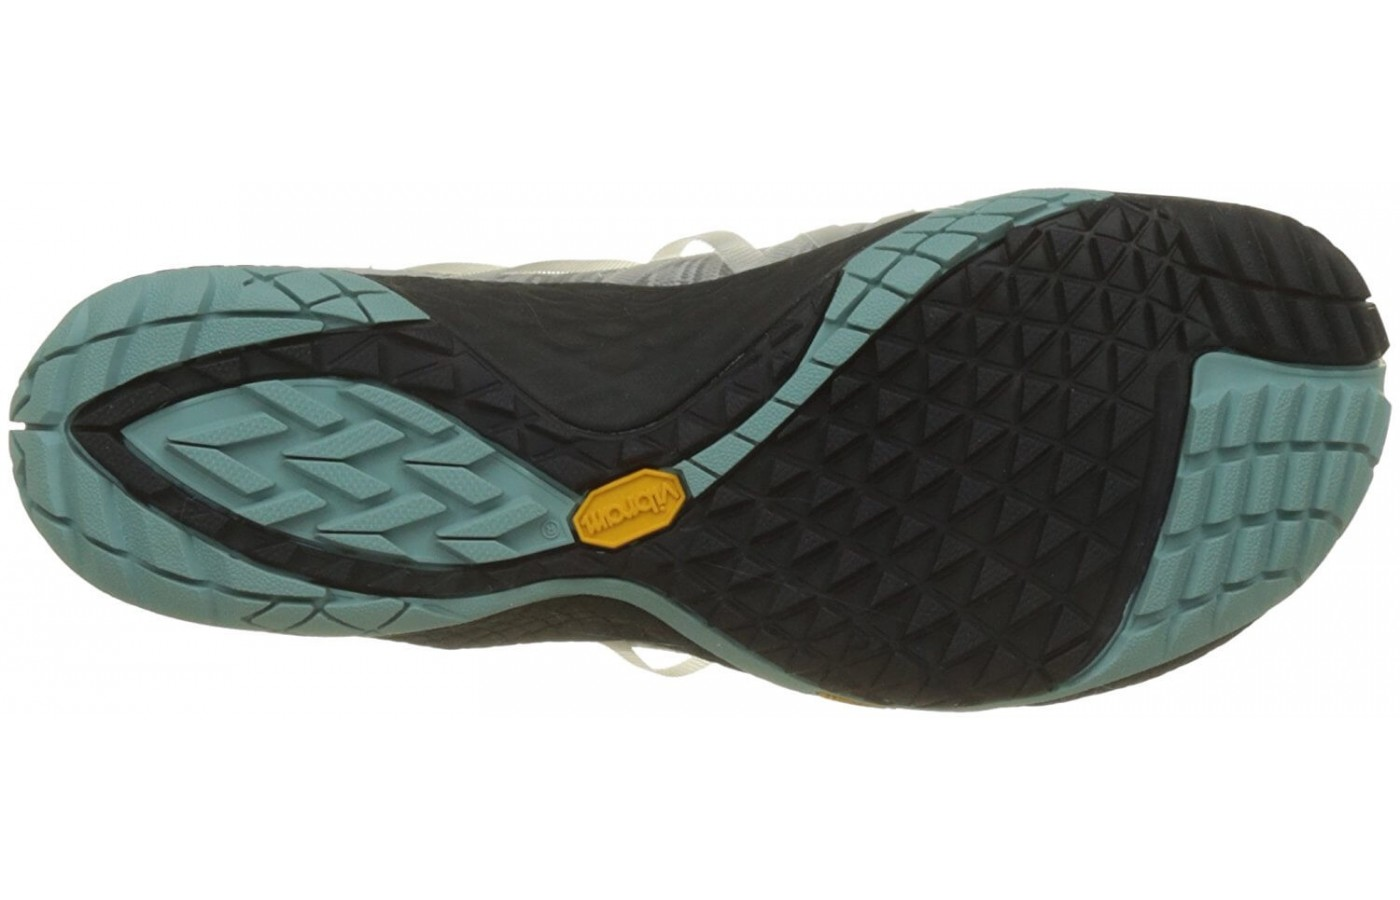 Vibram rubber provides amazing grip and traction